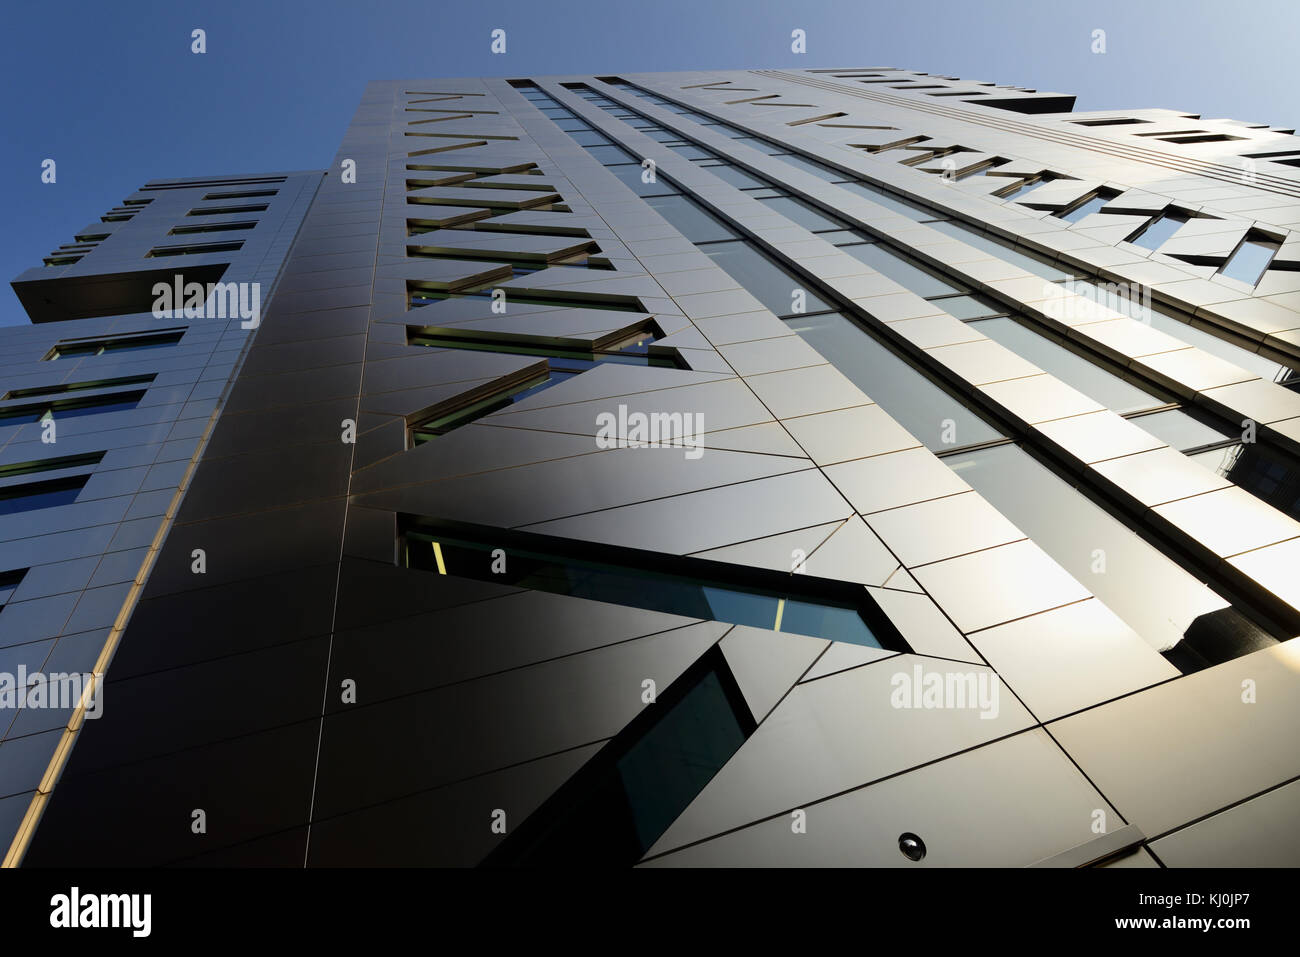 Five Broadgate circle, City of London, London E1, United Kingdom - Stock Image